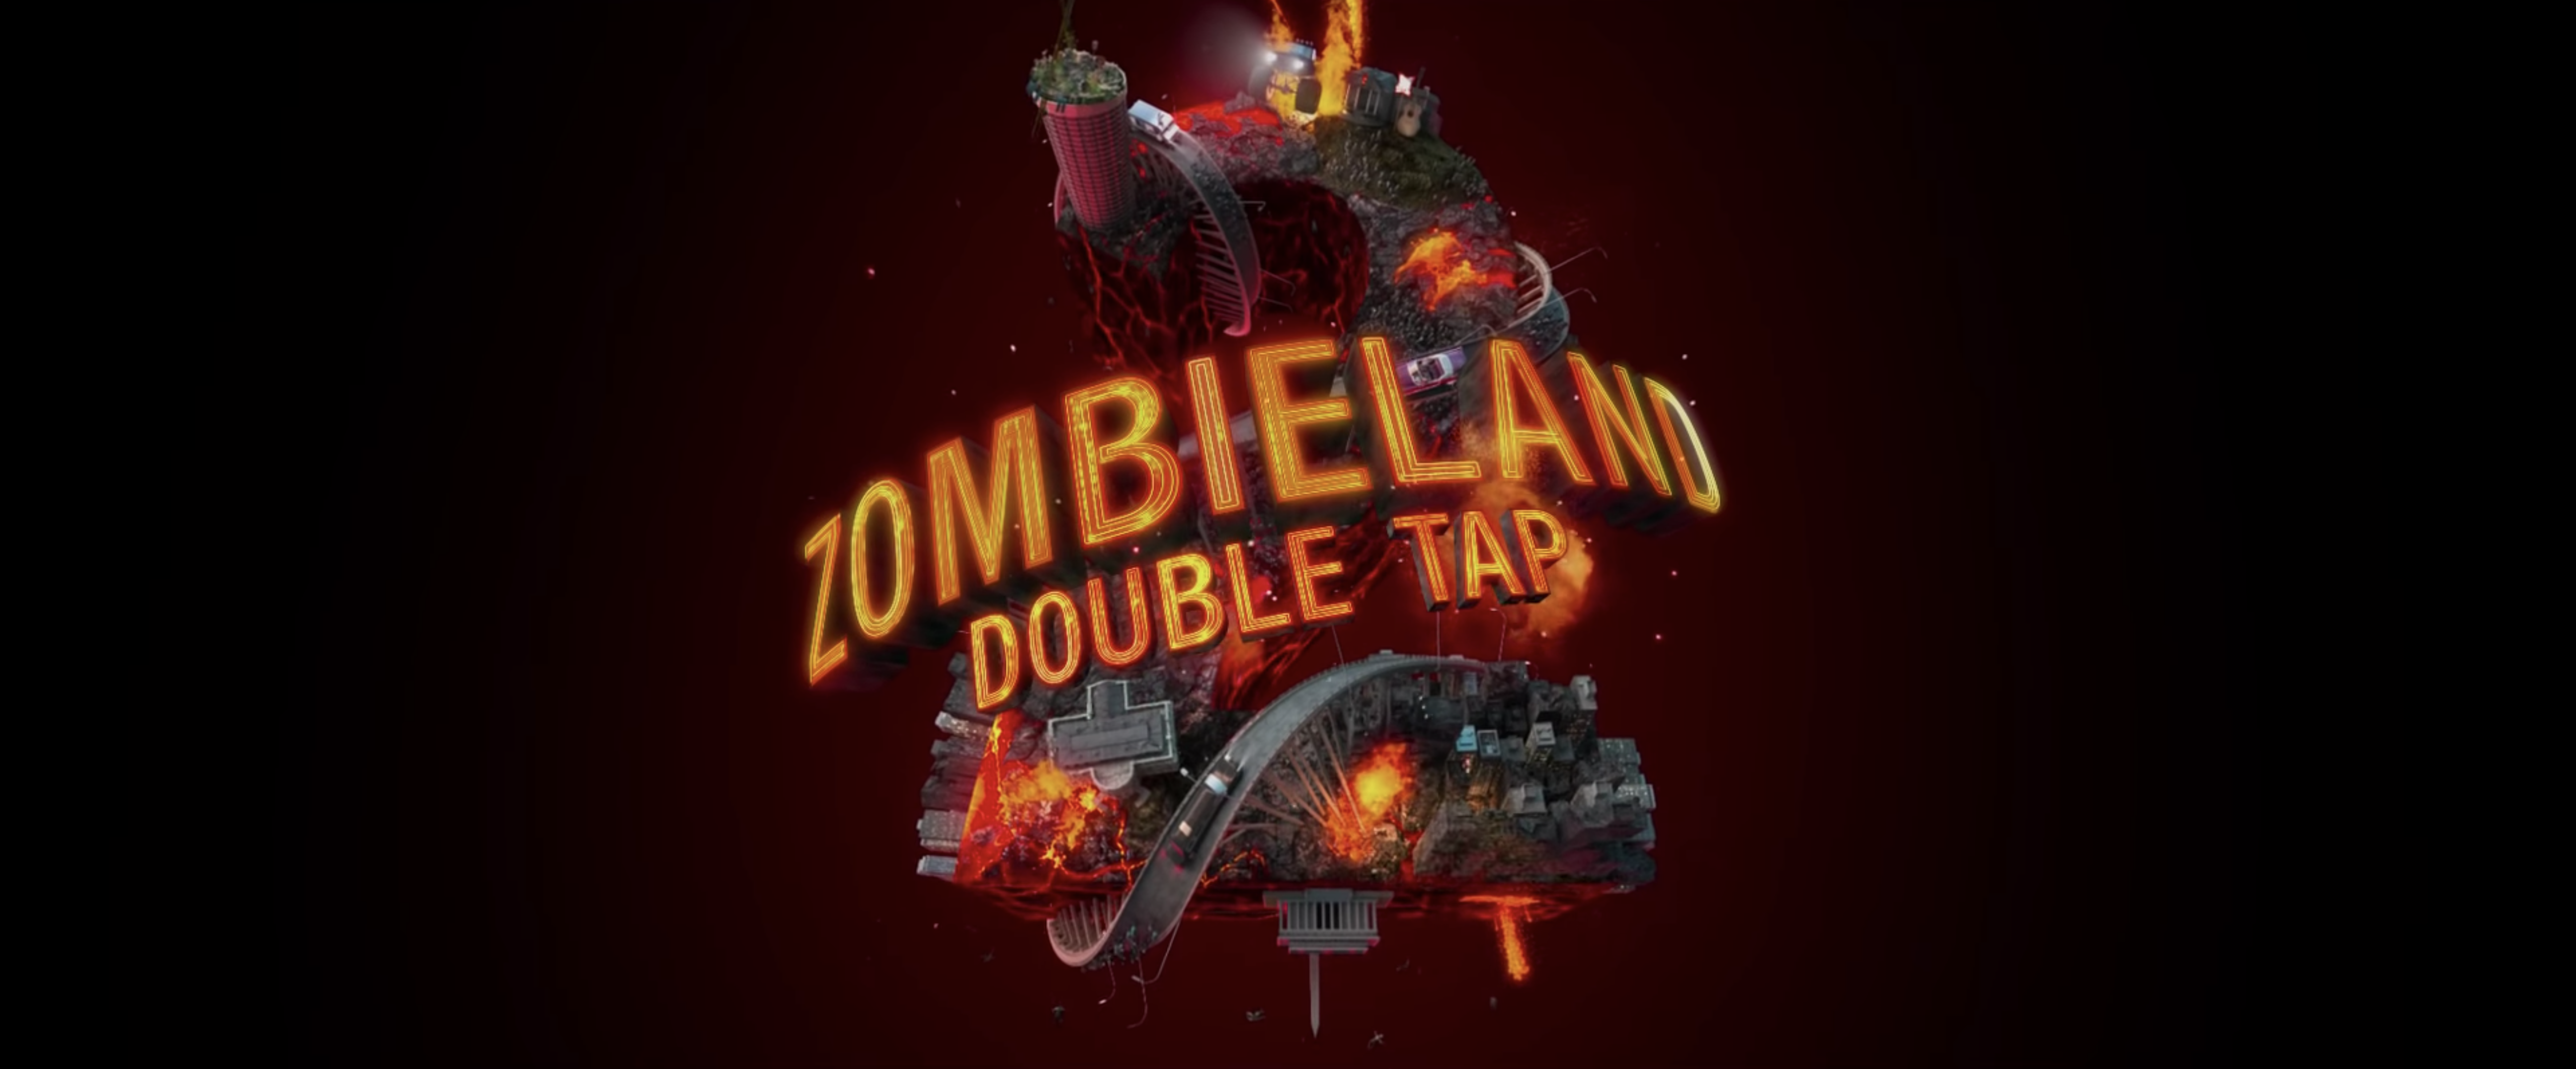 New Trailer for Zombieland: Double Tap, Netflix Orders